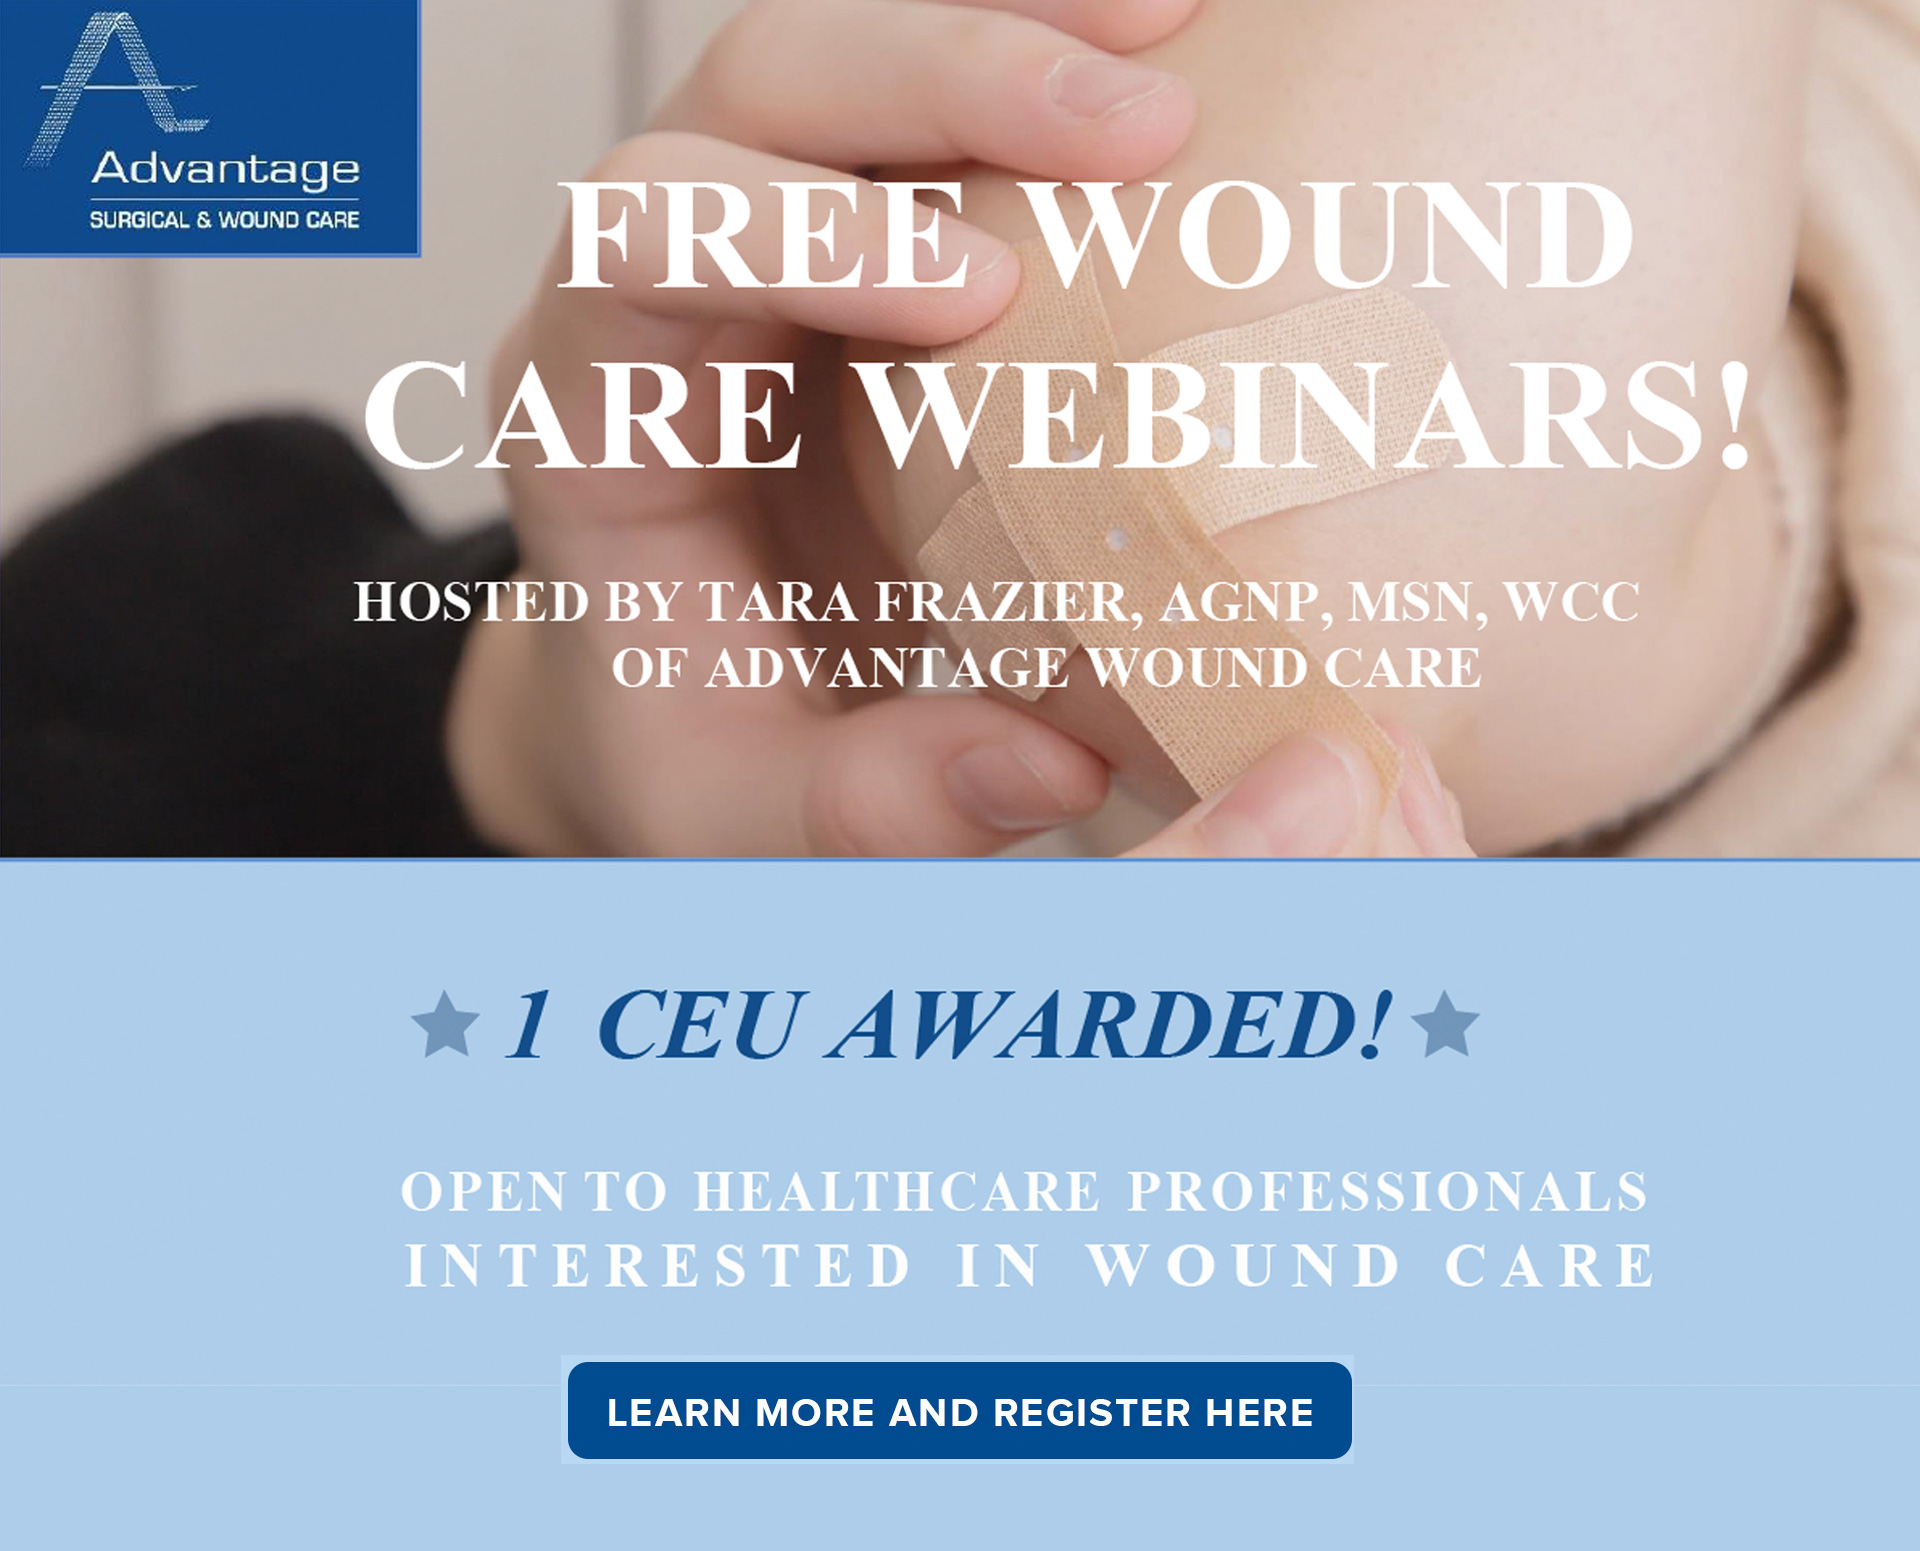 Free Wound Care Webinars